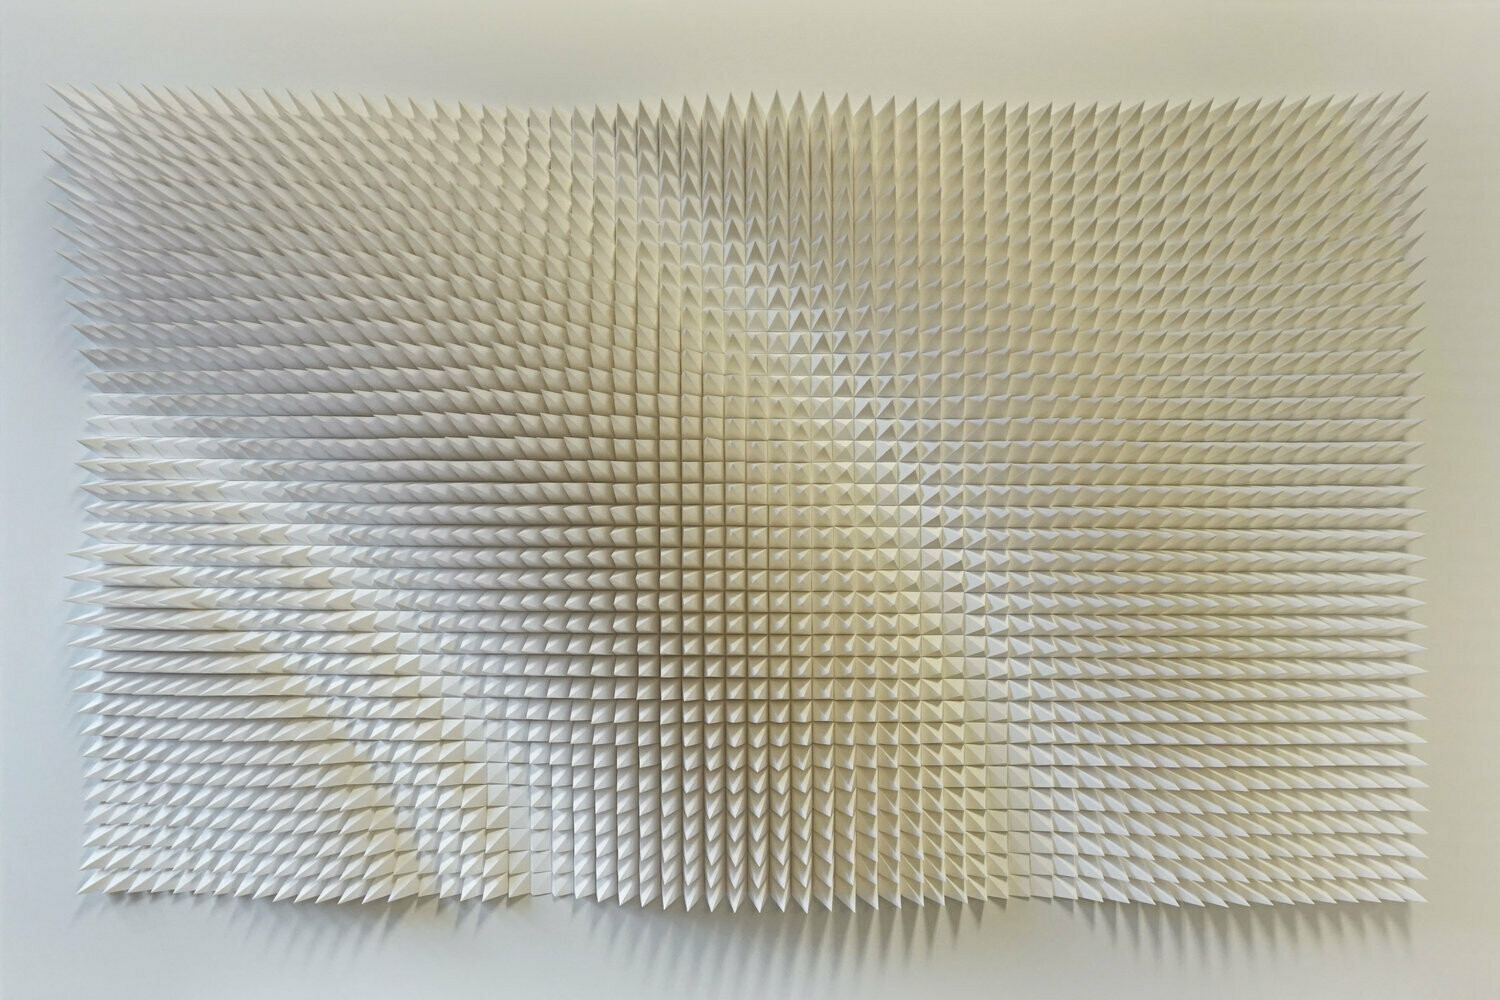 Geometric Paper Sculpture 30 (Title unspecified)